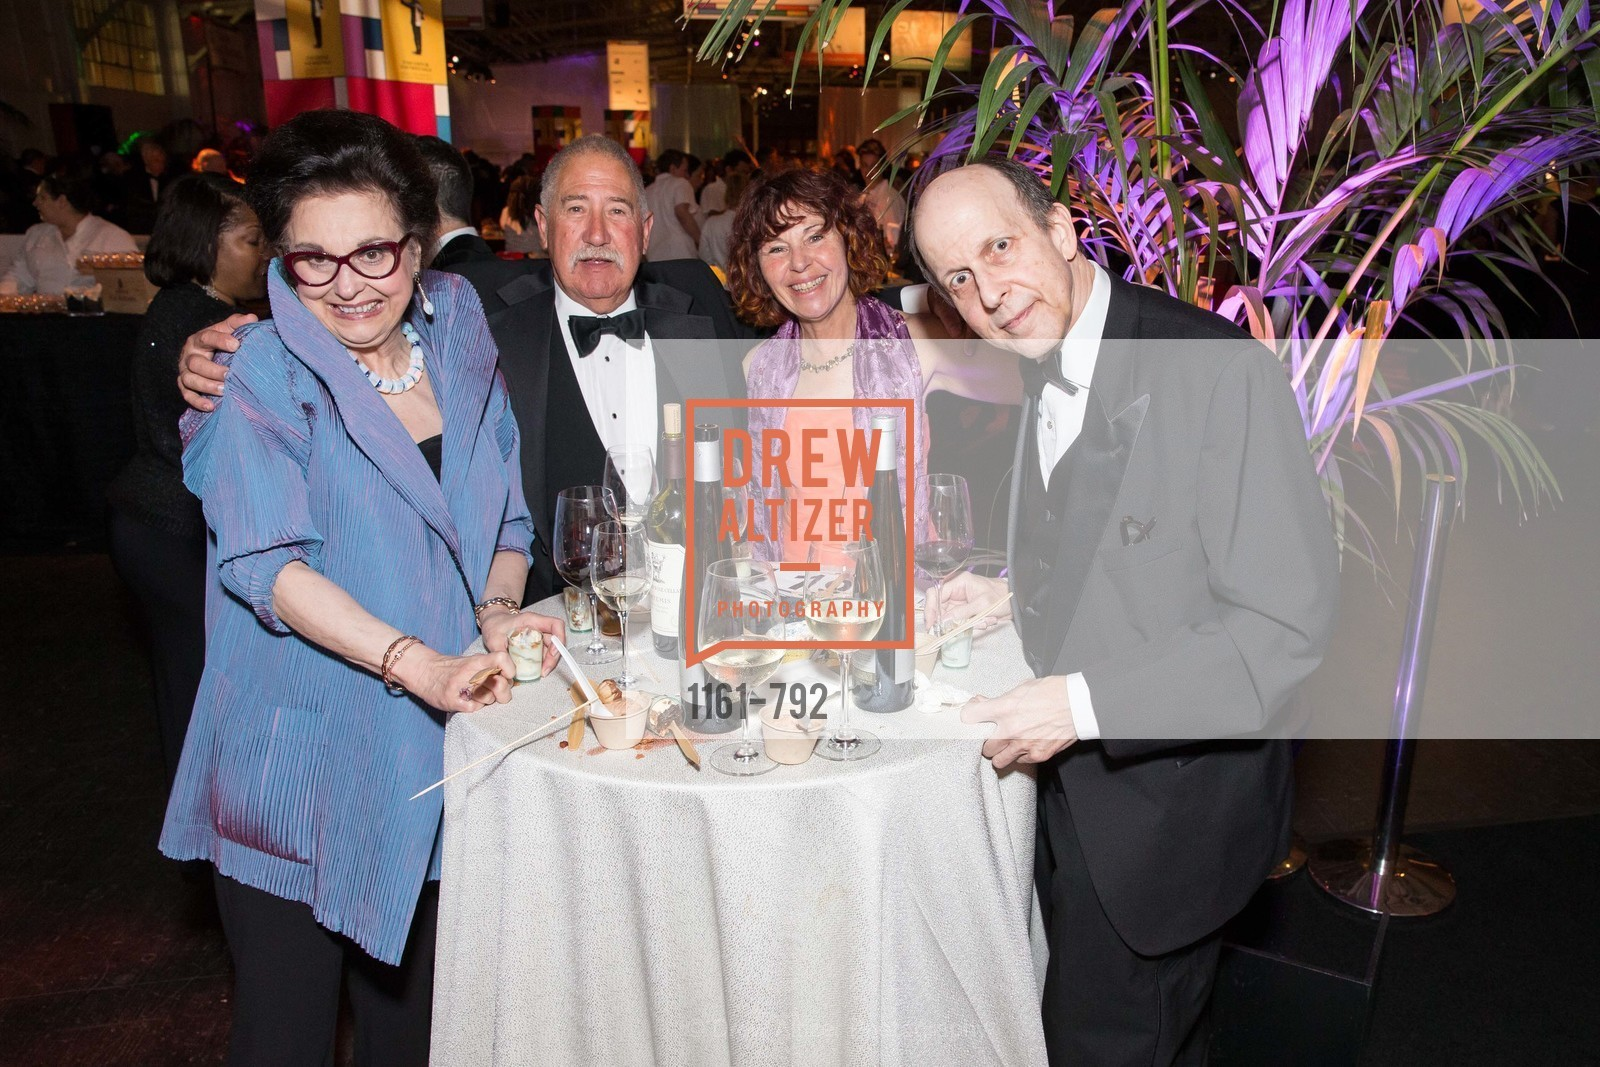 Marsha Green, Garrett Glaser, Chris Miller, Jeffrey Green, MEALS ON WHEELS OF SAN FRANCISCO'S 28th Annual Star Chefs and Vintners Gala, US, April 20th, 2015,Drew Altizer, Drew Altizer Photography, full-service agency, private events, San Francisco photographer, photographer california